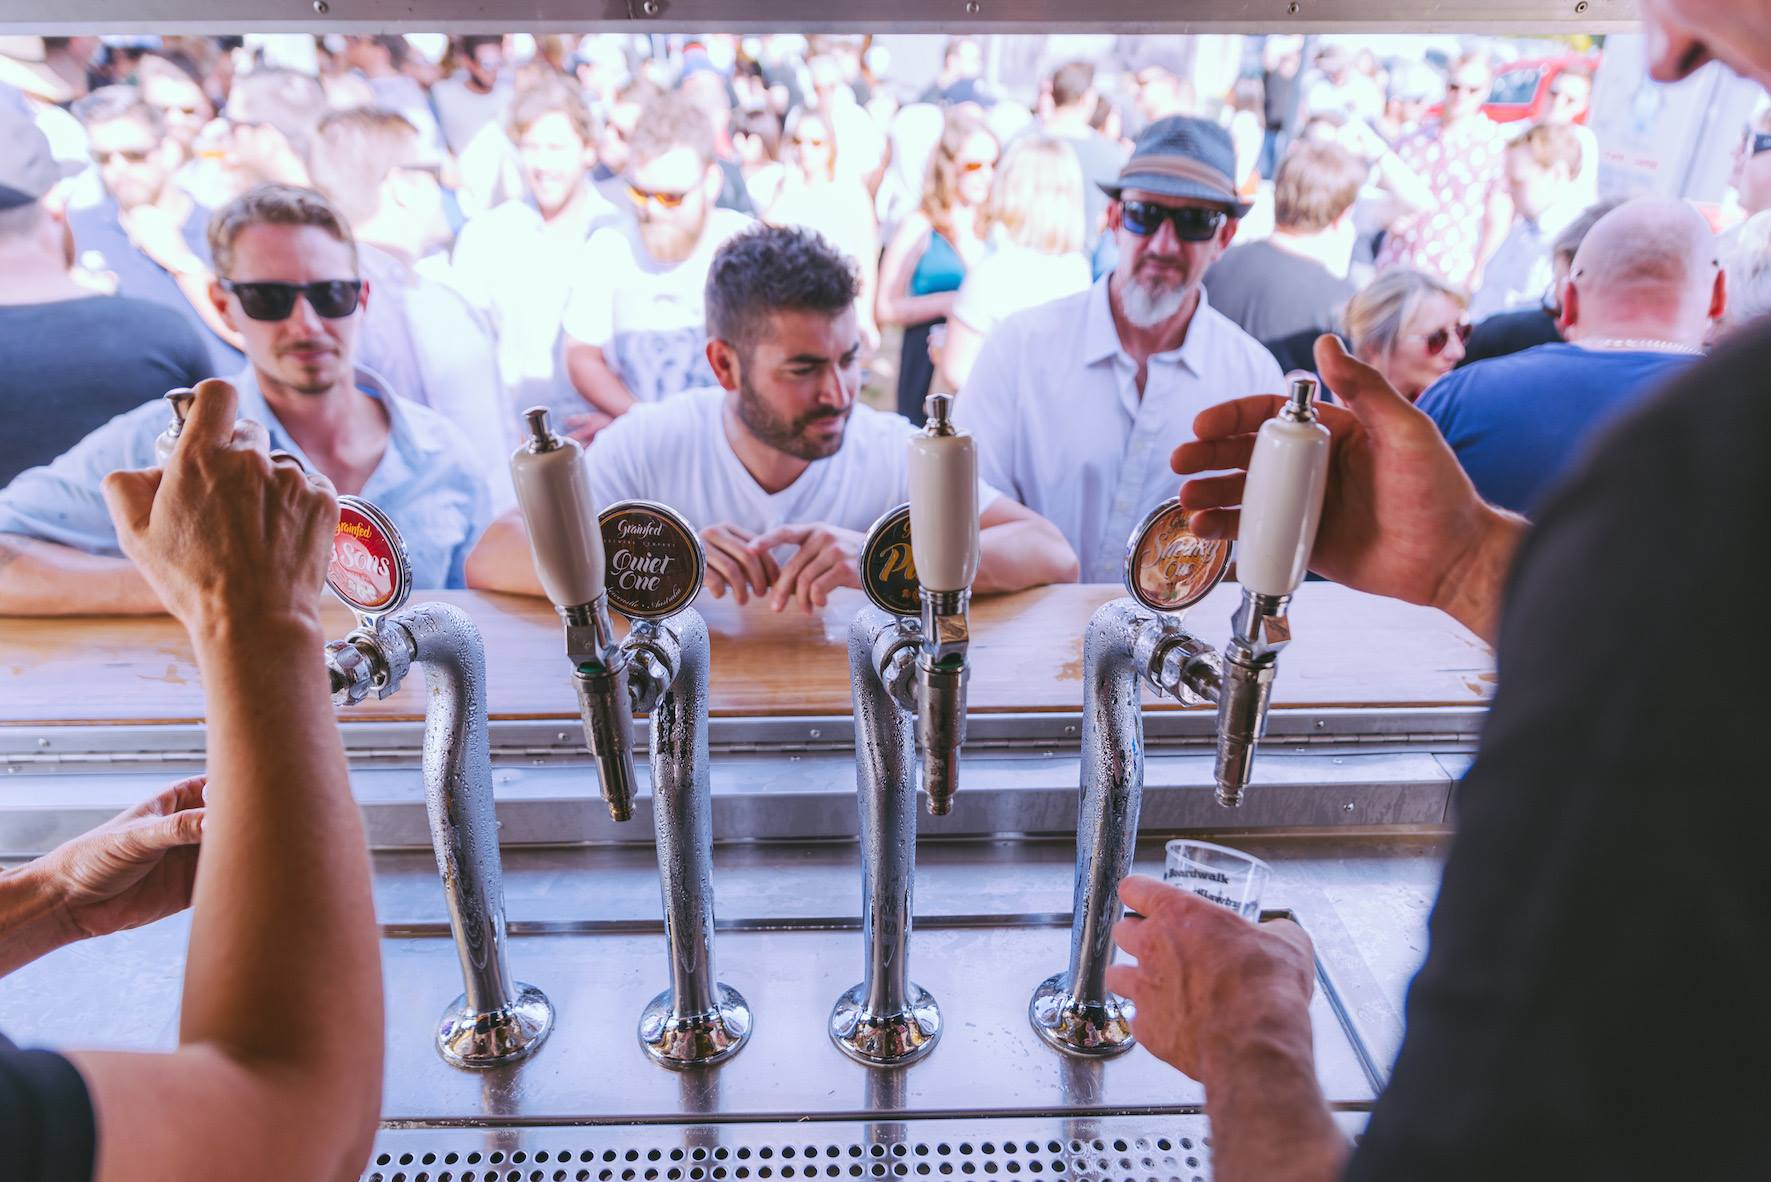 The NEwcastle Beer Festival 2018